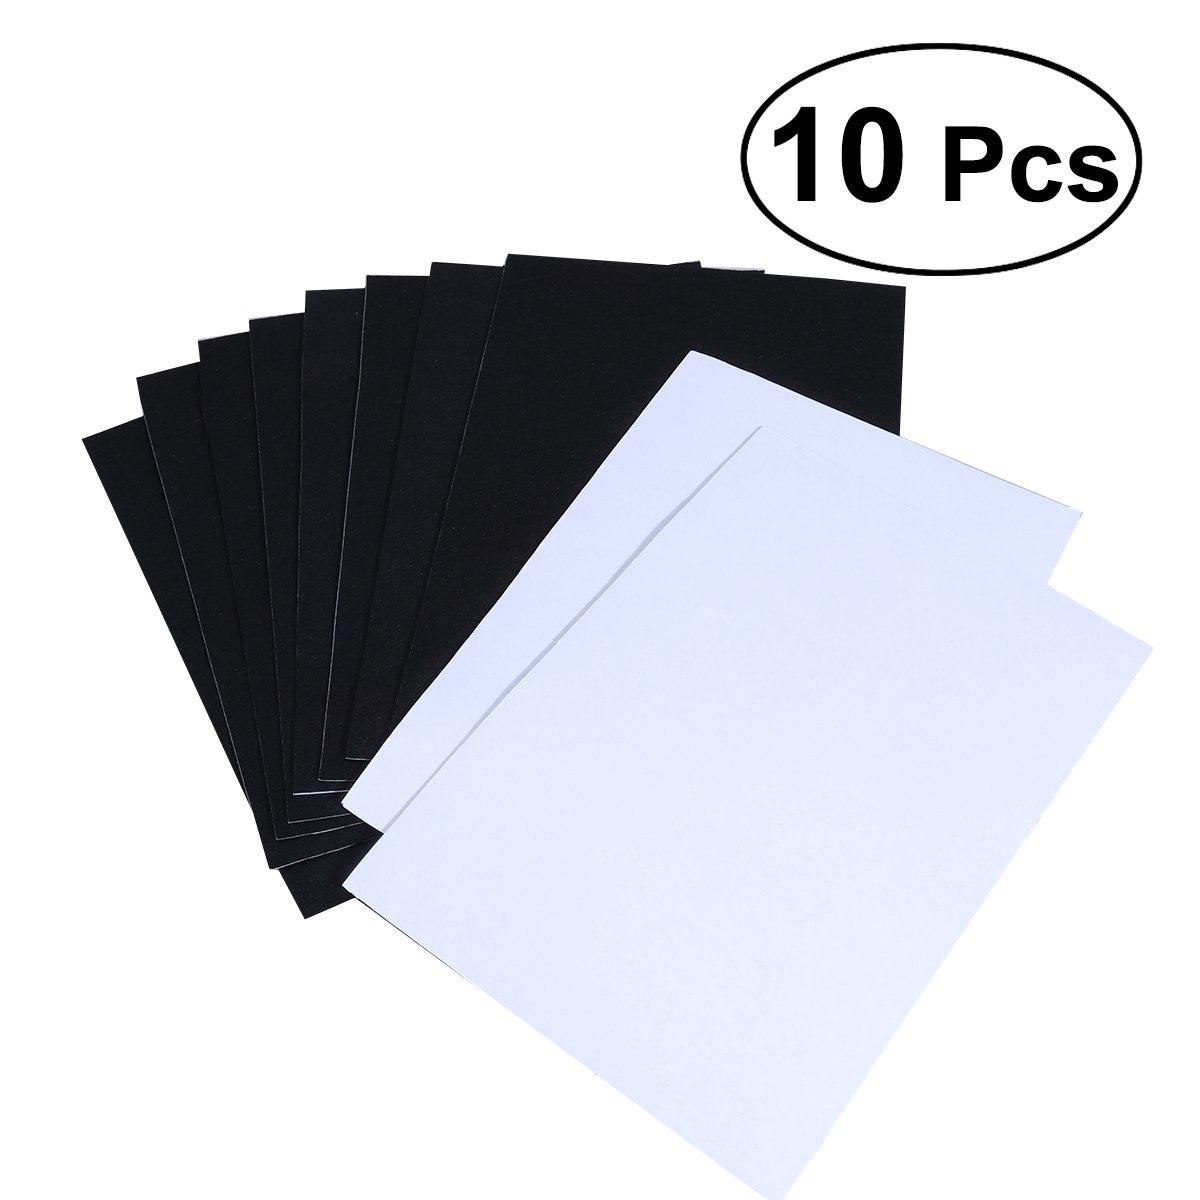 ULTNICE Craft Felt Sheets Blank Self Adhesive Felt Squares for Art Craft 10 Sheets